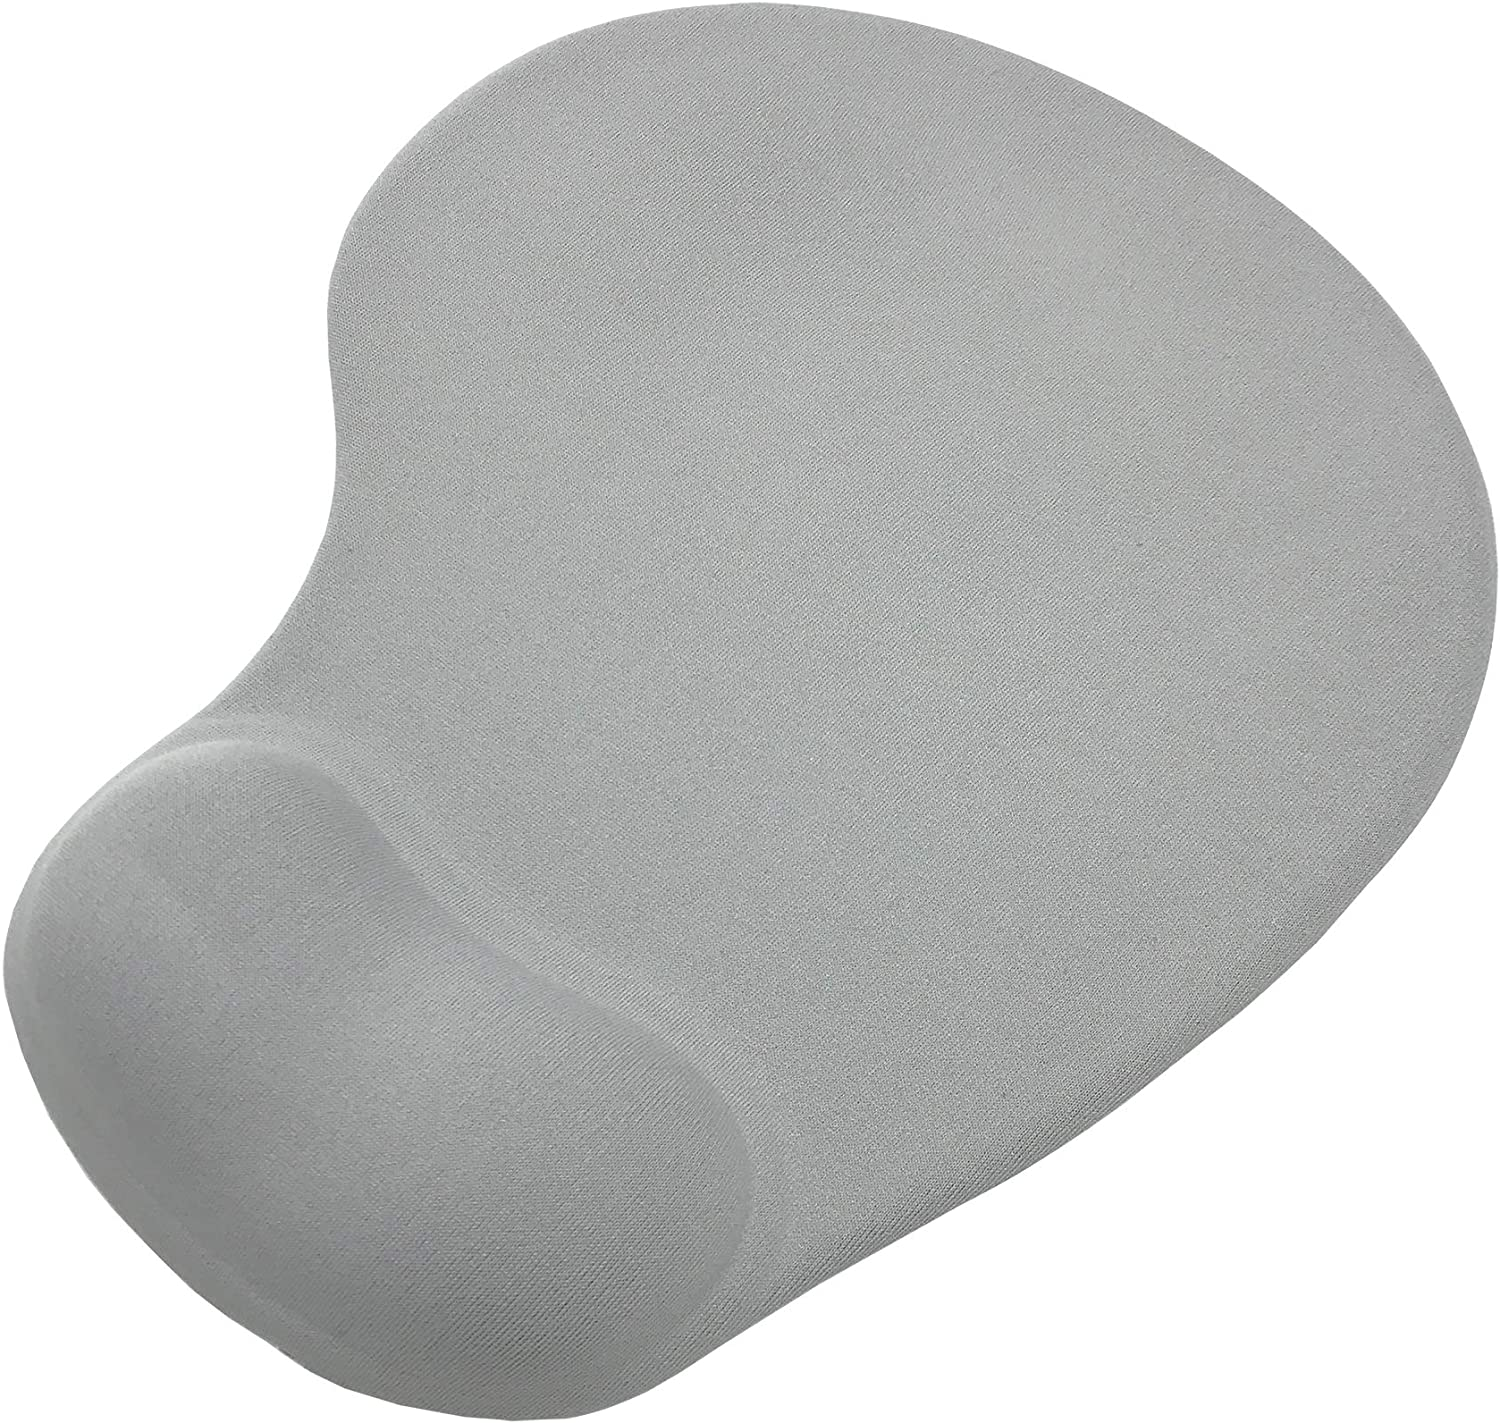 Tomer-Wharf Memory Foam Mouse Pad with Gel Wrist Rest,Comfortable Mouse Mat for Laptop Computer Desktop,Non-Slip Rubber Base Design,Gray